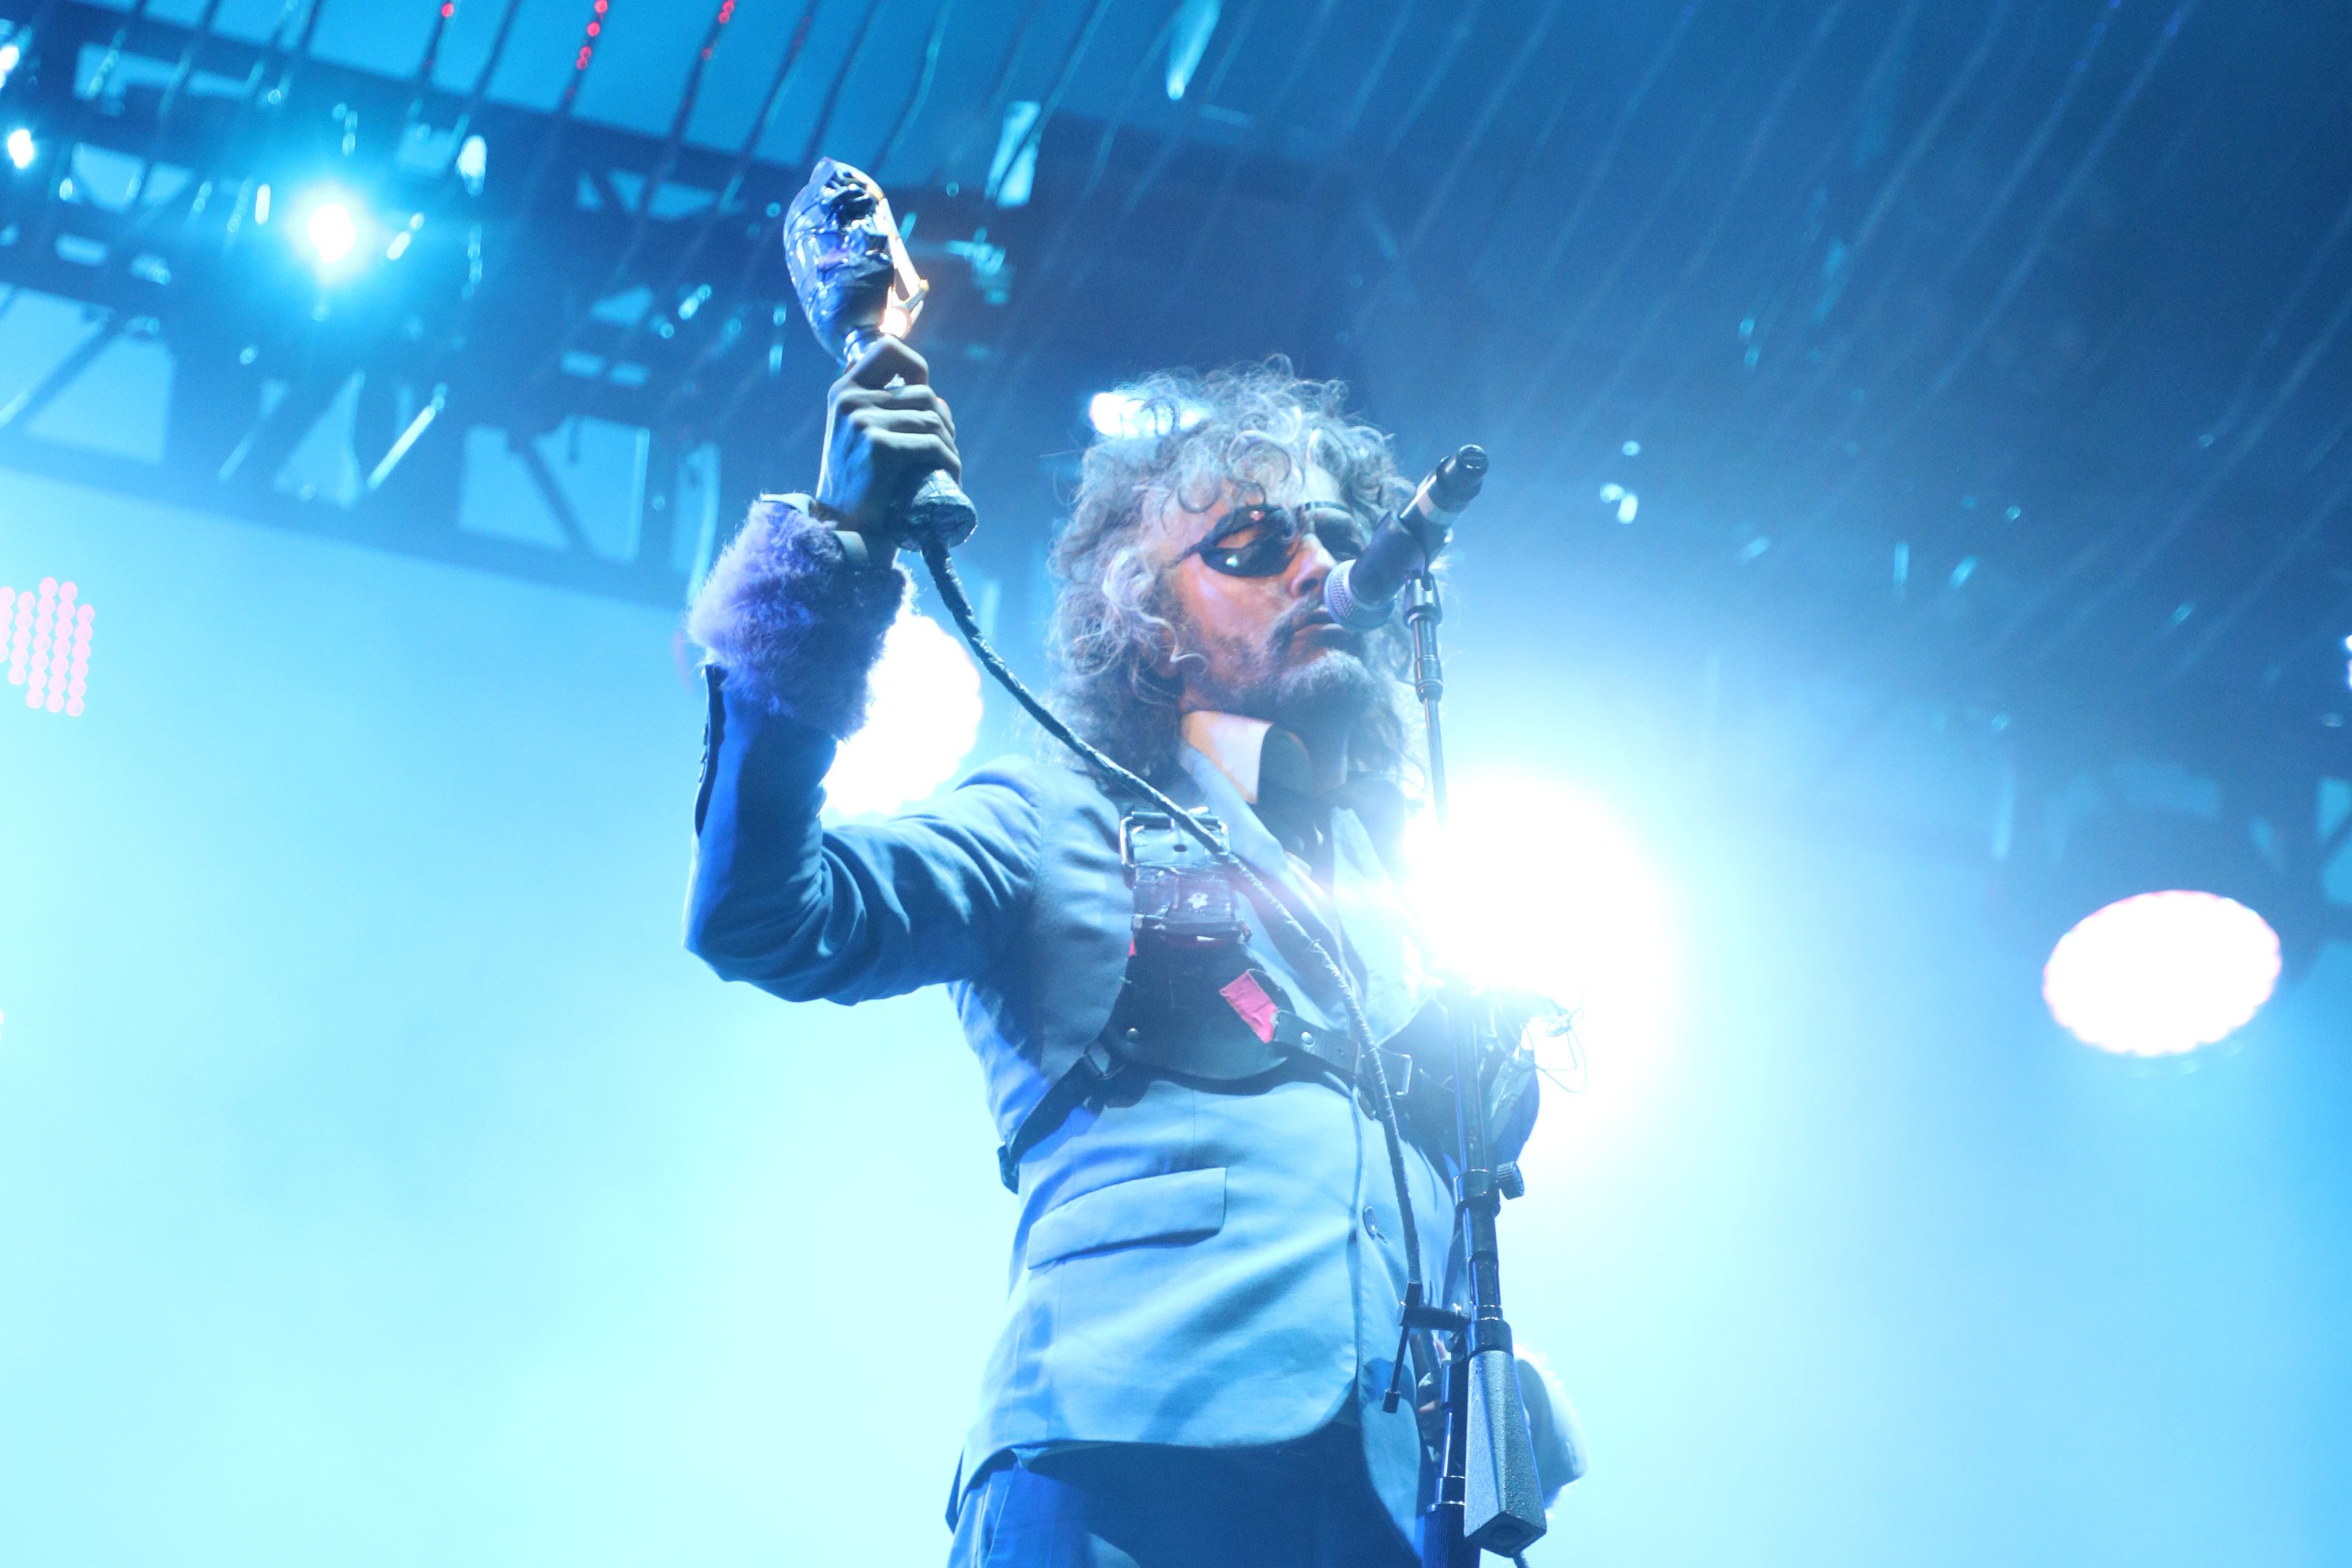 Flaming Lips Tour Dates 2019